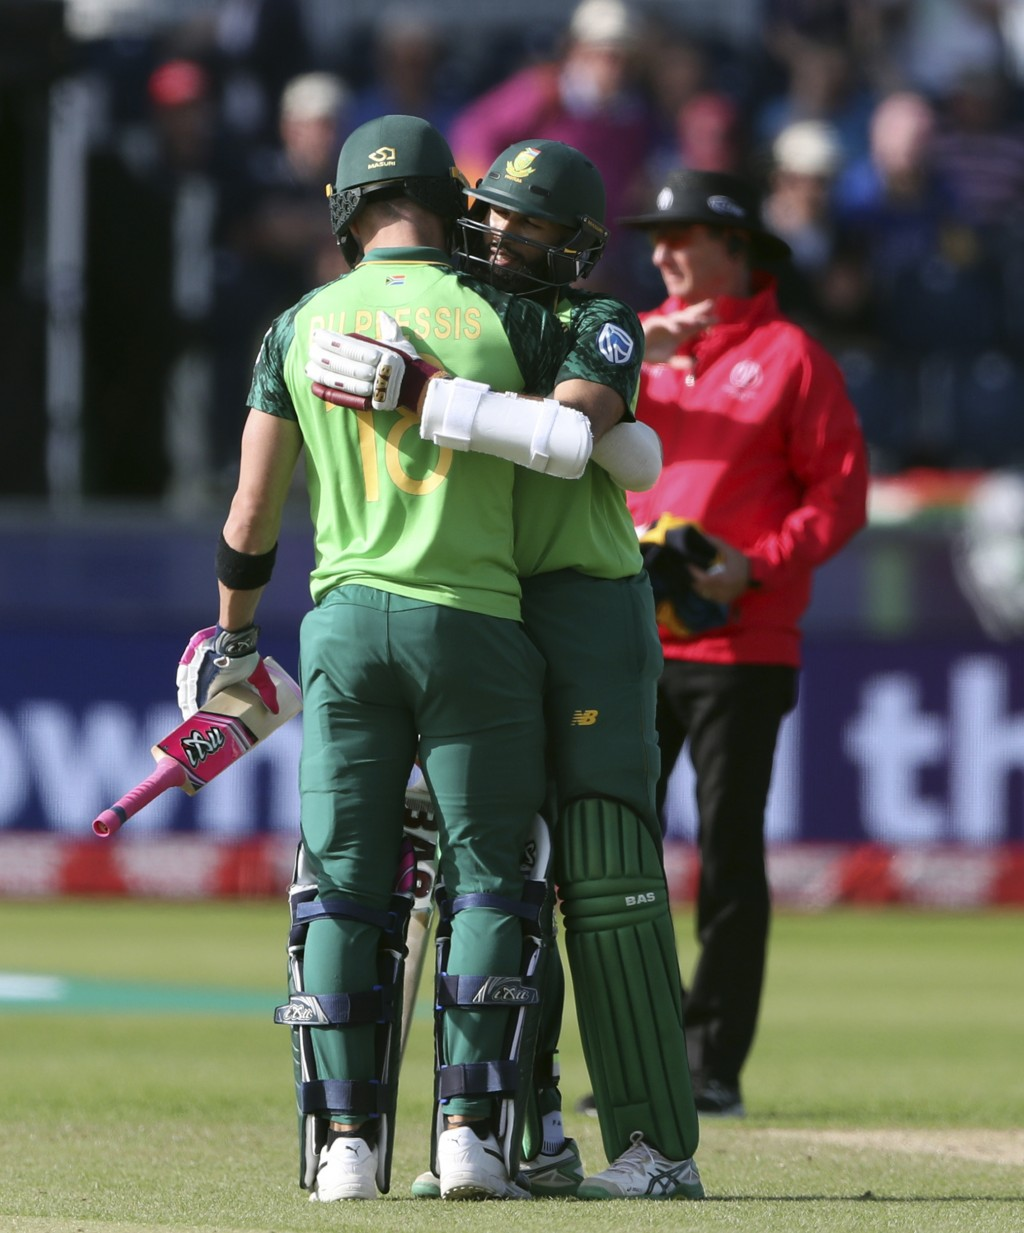 South Africa's batsman Hashim Amla, back embraces his captain Faf du Plessis at the end of the Cricket World Cup match between Sri Lanka and South Afr...